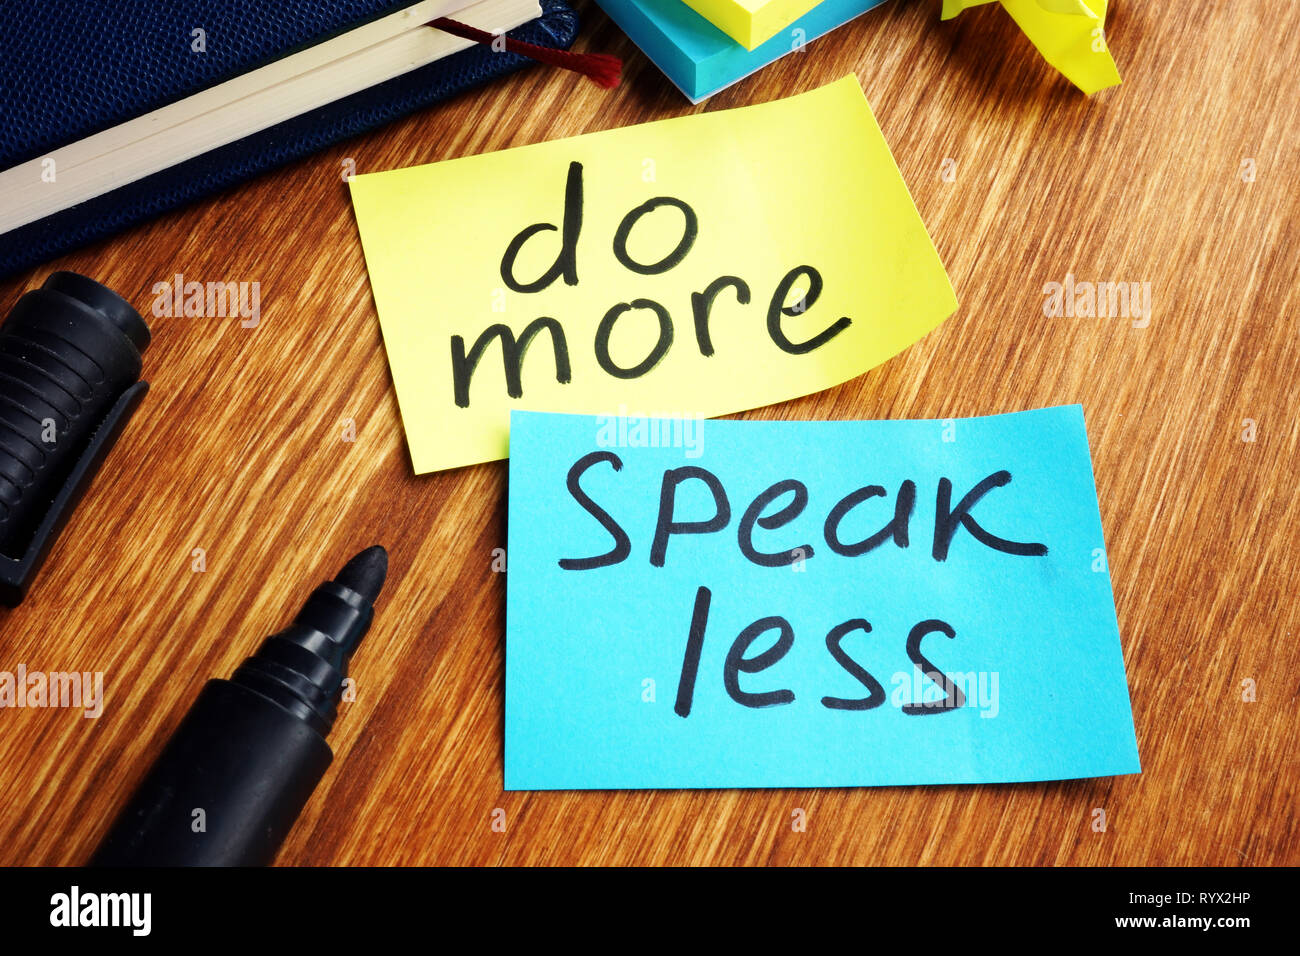 Do more speak less written on a color papers. - Stock Image